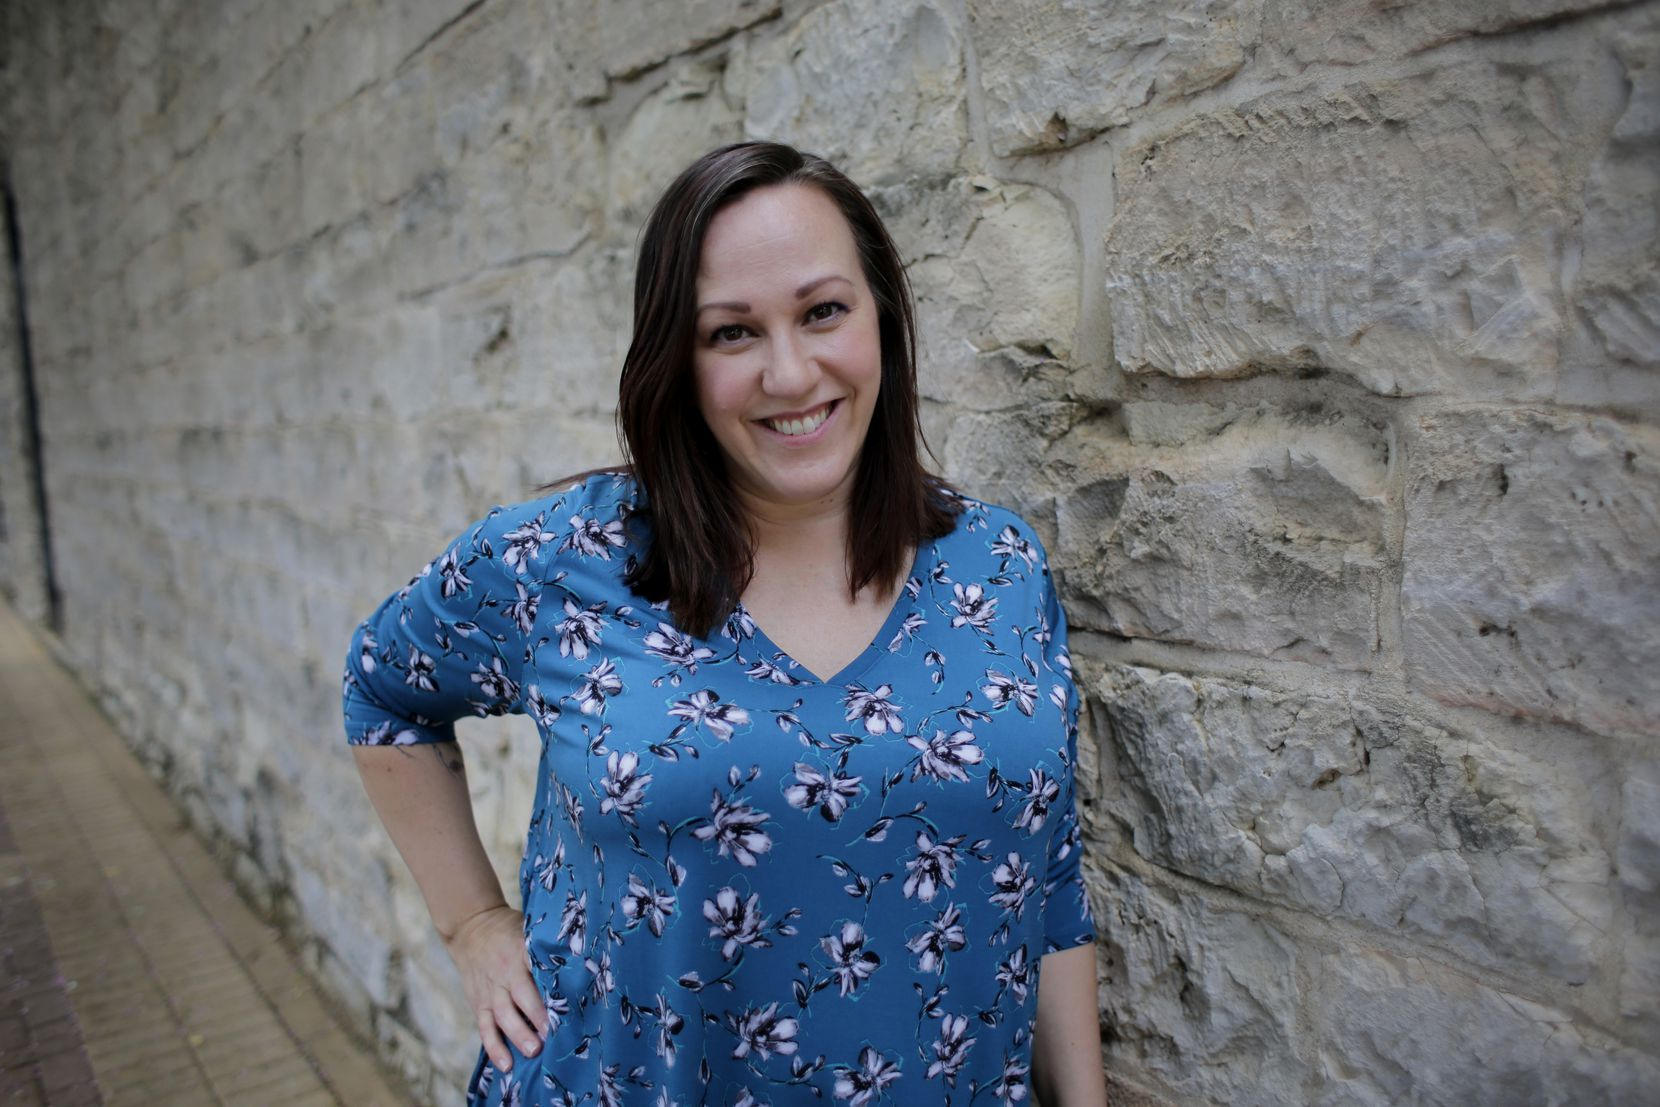 FILE - In this July 1, 2019, file photo, Air Force veteran MJ Hegar poses for a photo in Round Rock, Texas. Hegar is the choice of Senate Democrats' campaign arm to take on Republican incumbent John Cornyn in 2020, picking up a key endorsement Monday, Dec. 16, 2019, in a crowded and widely unknown field of challengers. (AP Photo/Eric Gay, File)